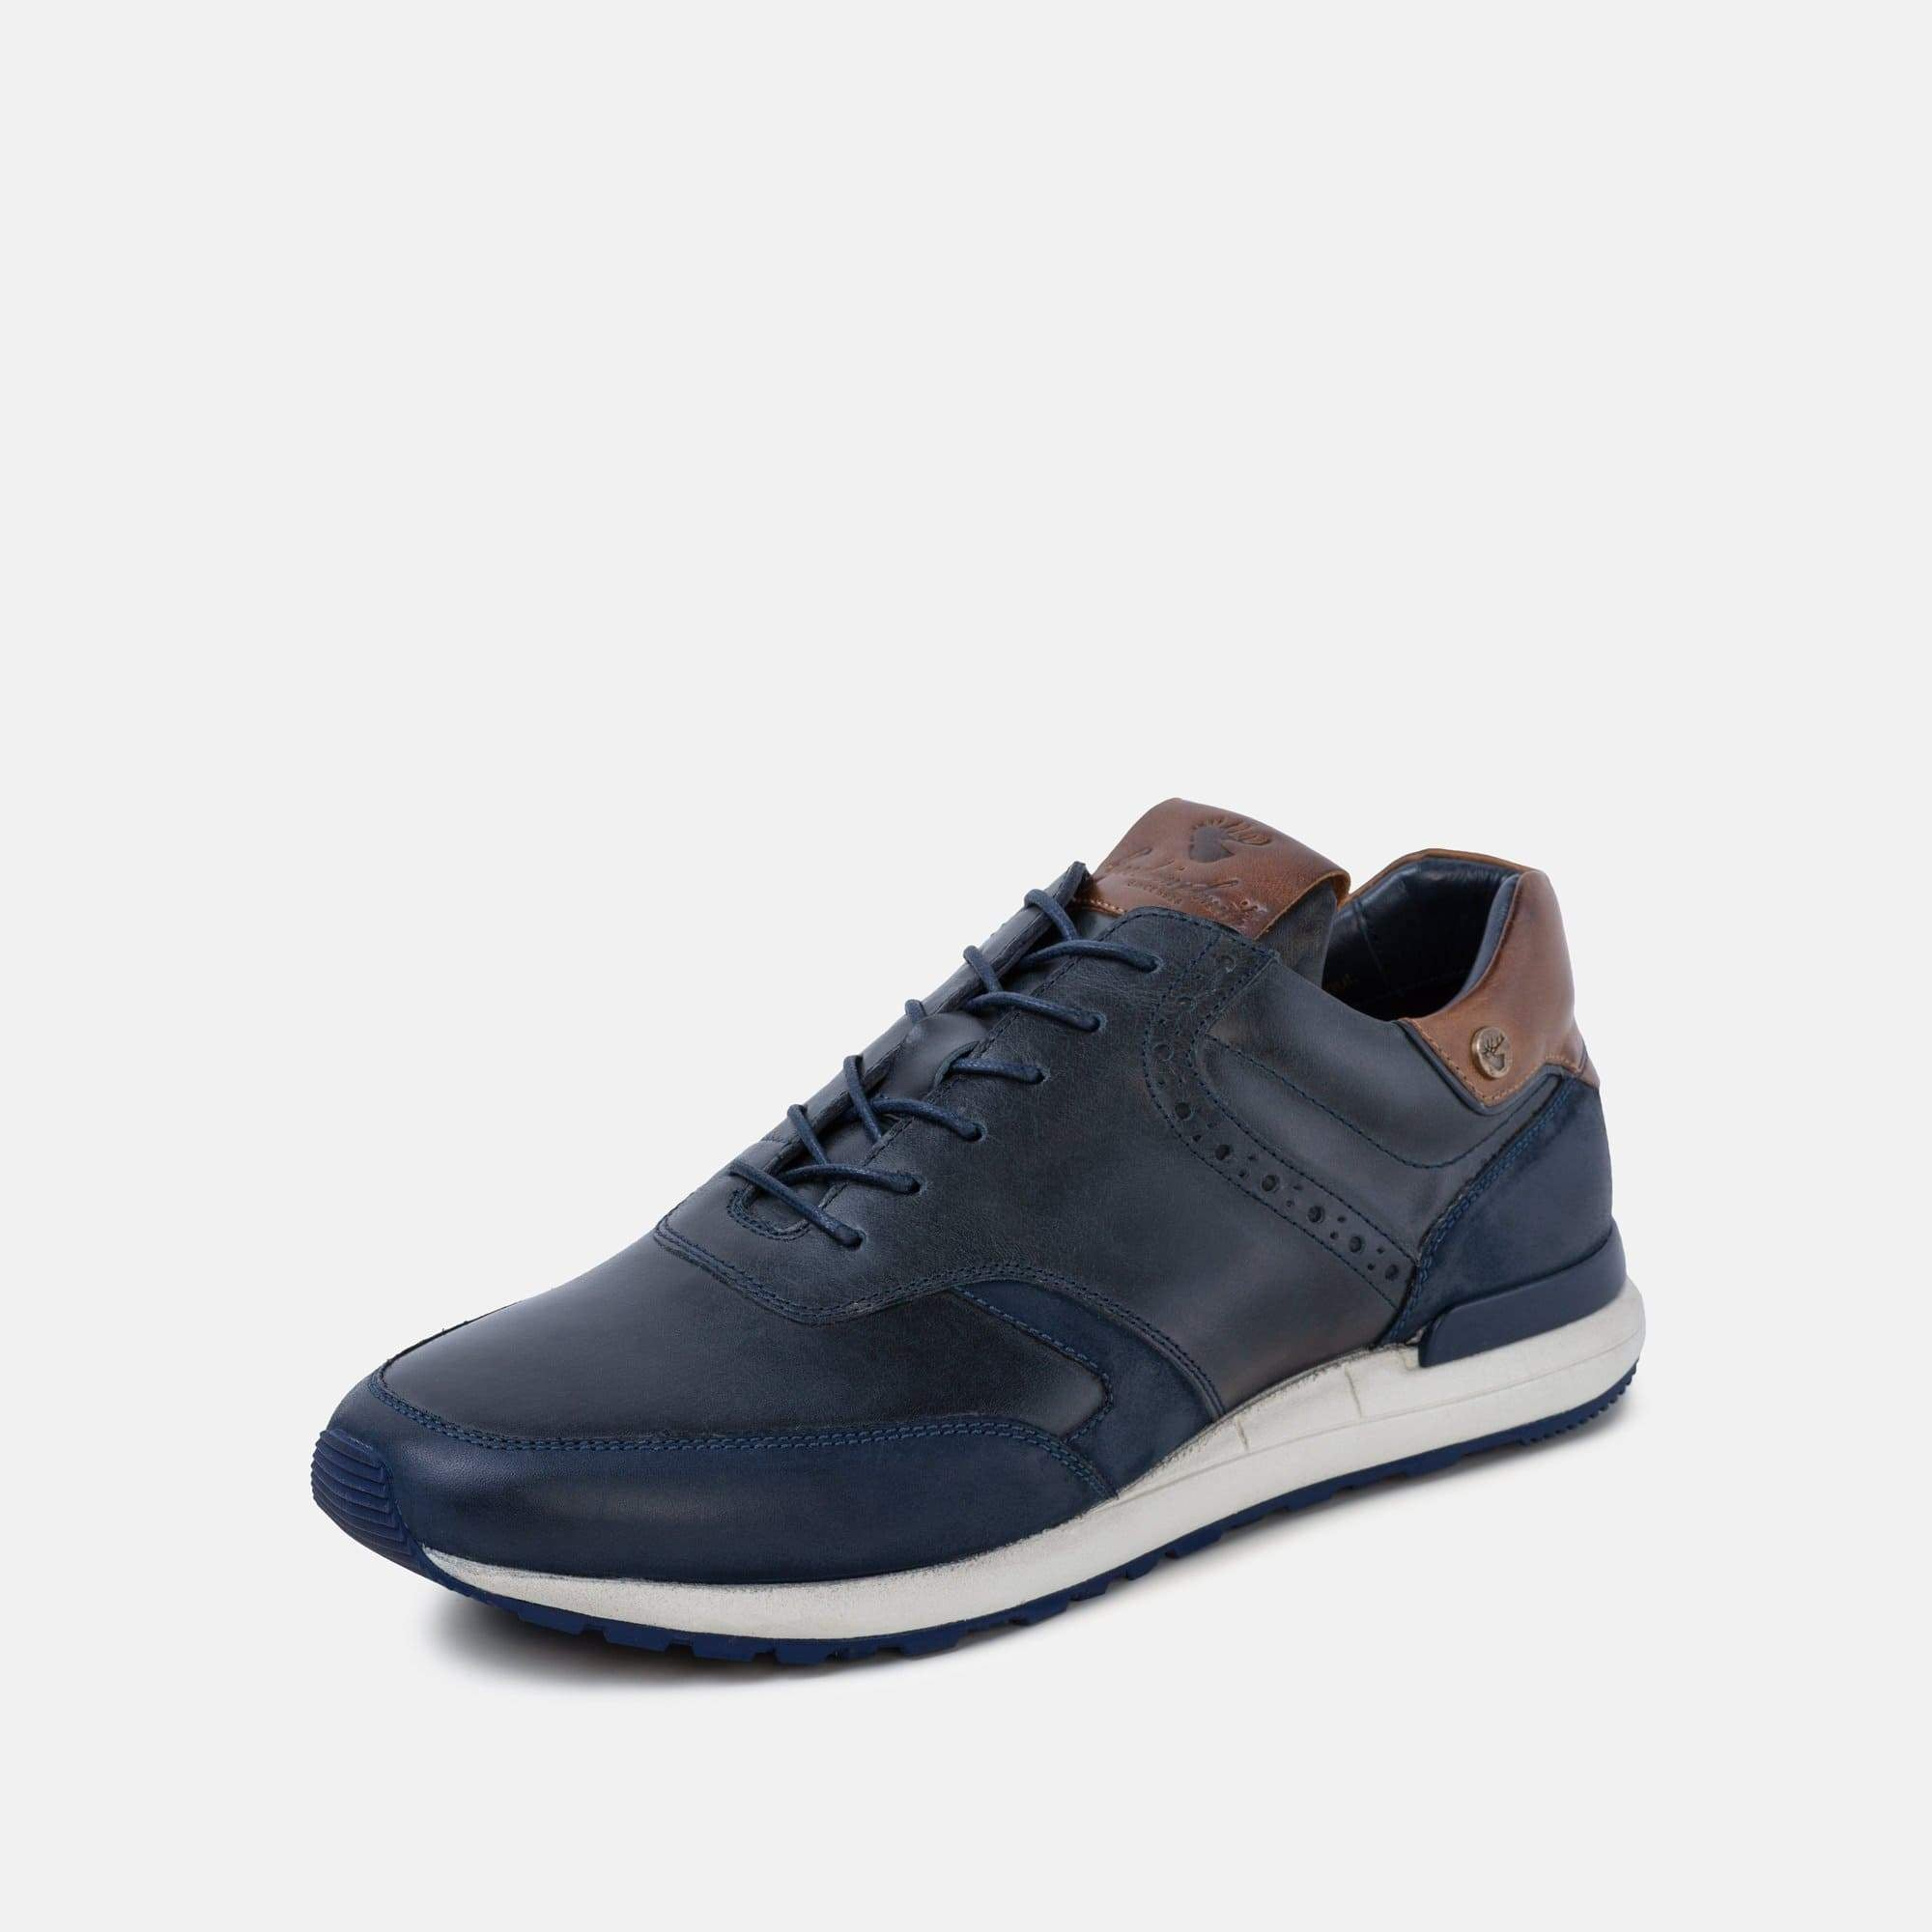 TPR sole with anti-slip tread on mens franco navy trainer